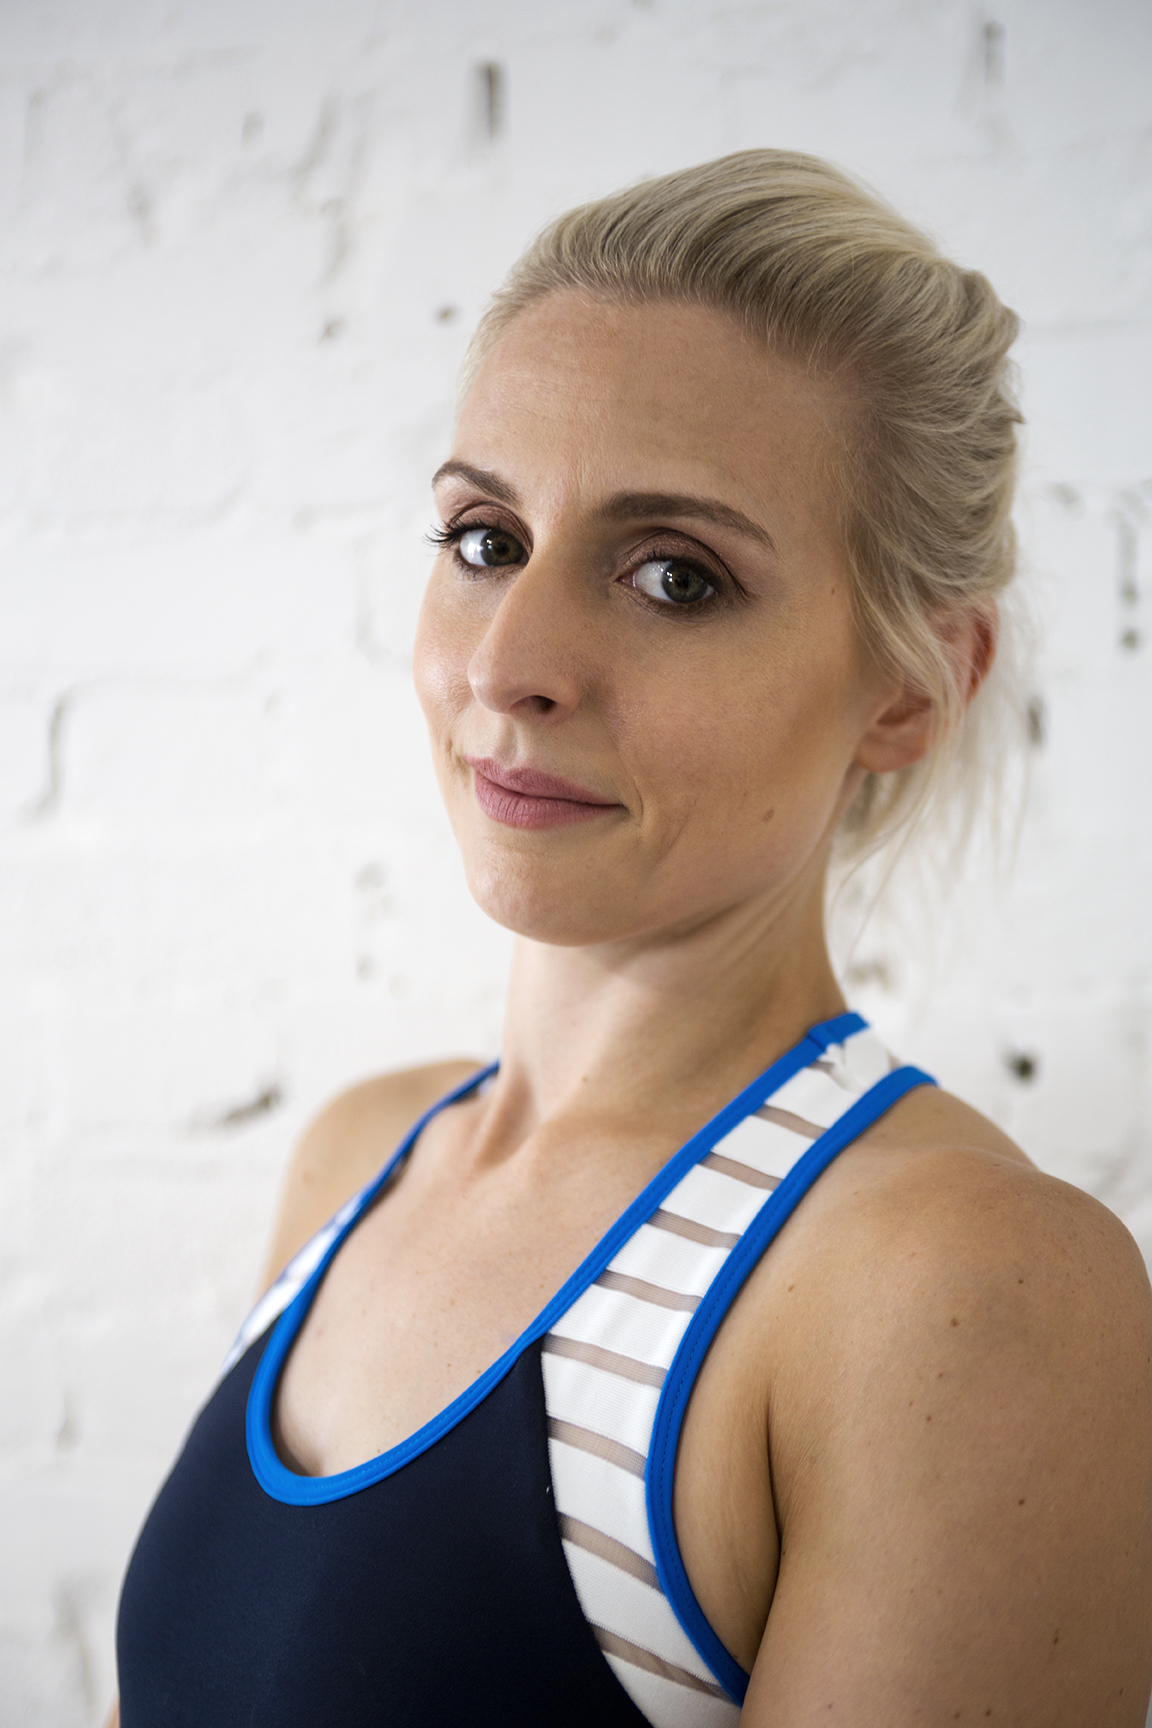 Emily-Samson-North-East-London-Personal-Trainer-EBD-Fitness-profile2.jpg